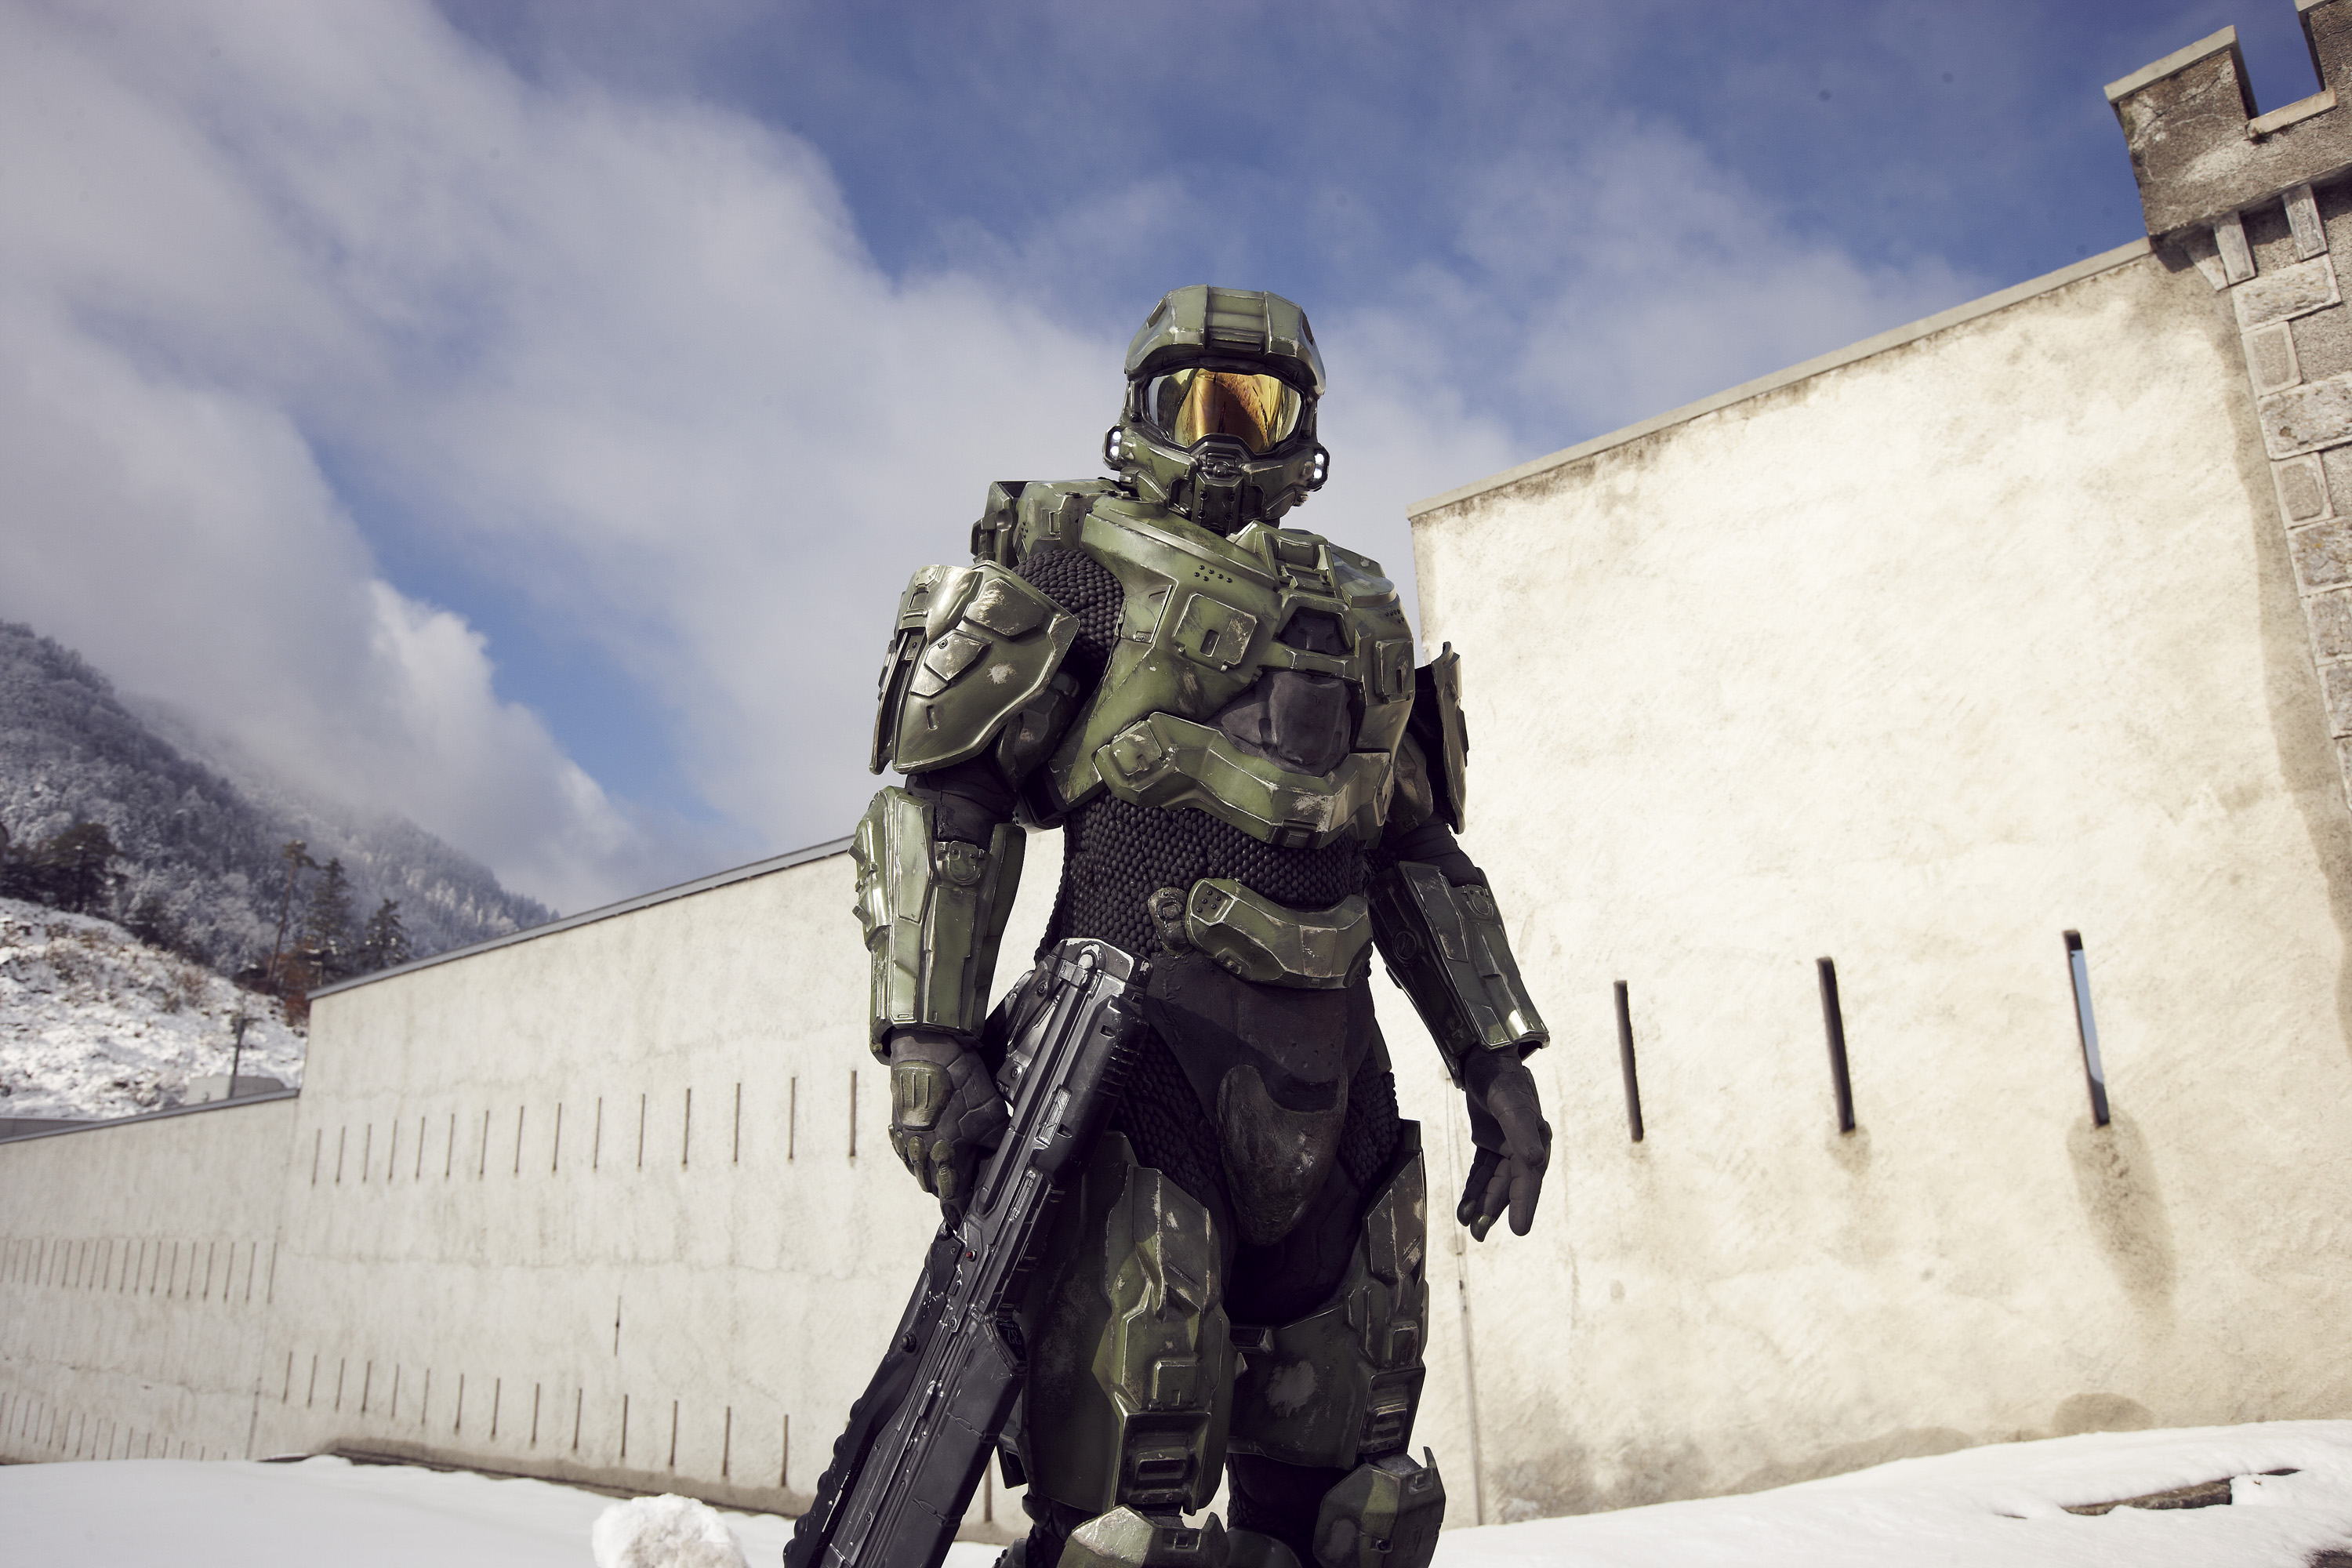 Master Chief stands guard at the Liechtenstein border during the HALO 4 launch by Xbox 360 on October 29, 2012 in Balzers, Liechtenstein.